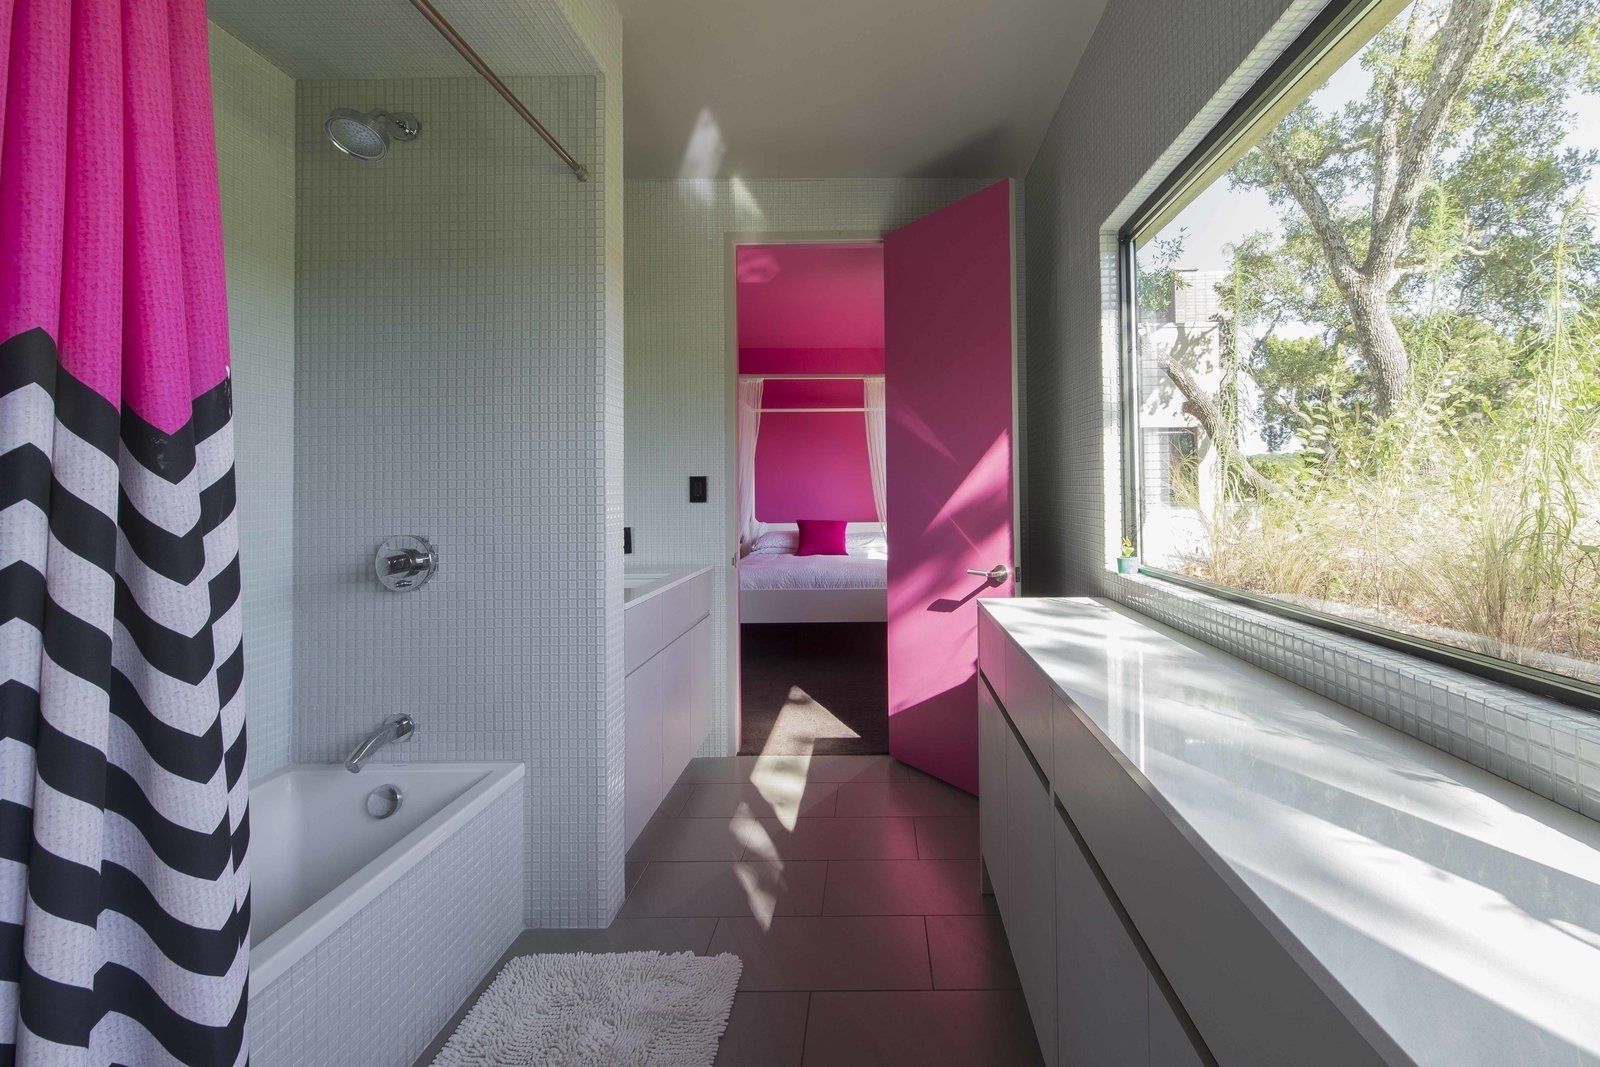 Each bedroom in the house contains dedicated storage space for guests, and improvement Paul and Jessica added after they started hosting.  Photo 7 of 8 in An Austin Airbnb Is a Blissful Getaway